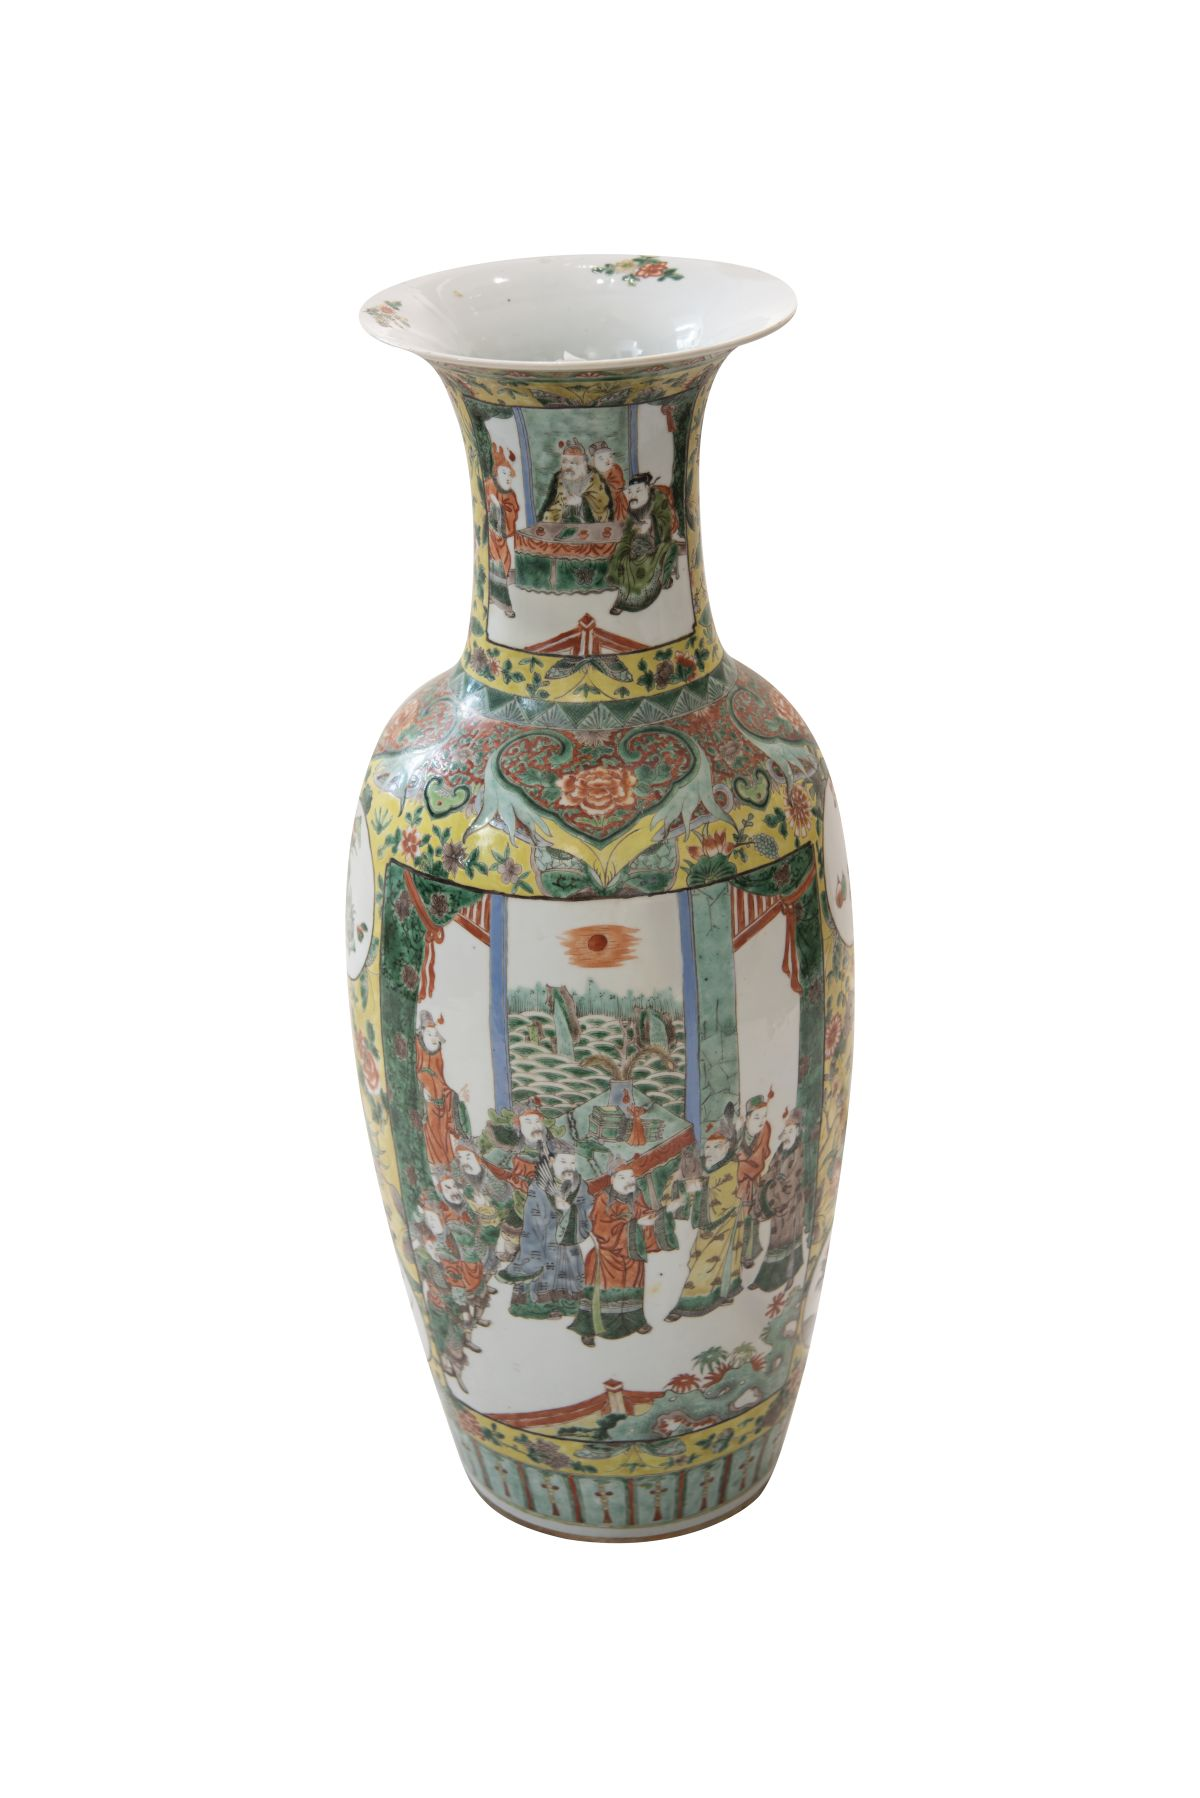 #190 Large Chinese vase Qing Dynasty 19th century | Große Chinensische Vase Qing Dynastie 19. Jh Image